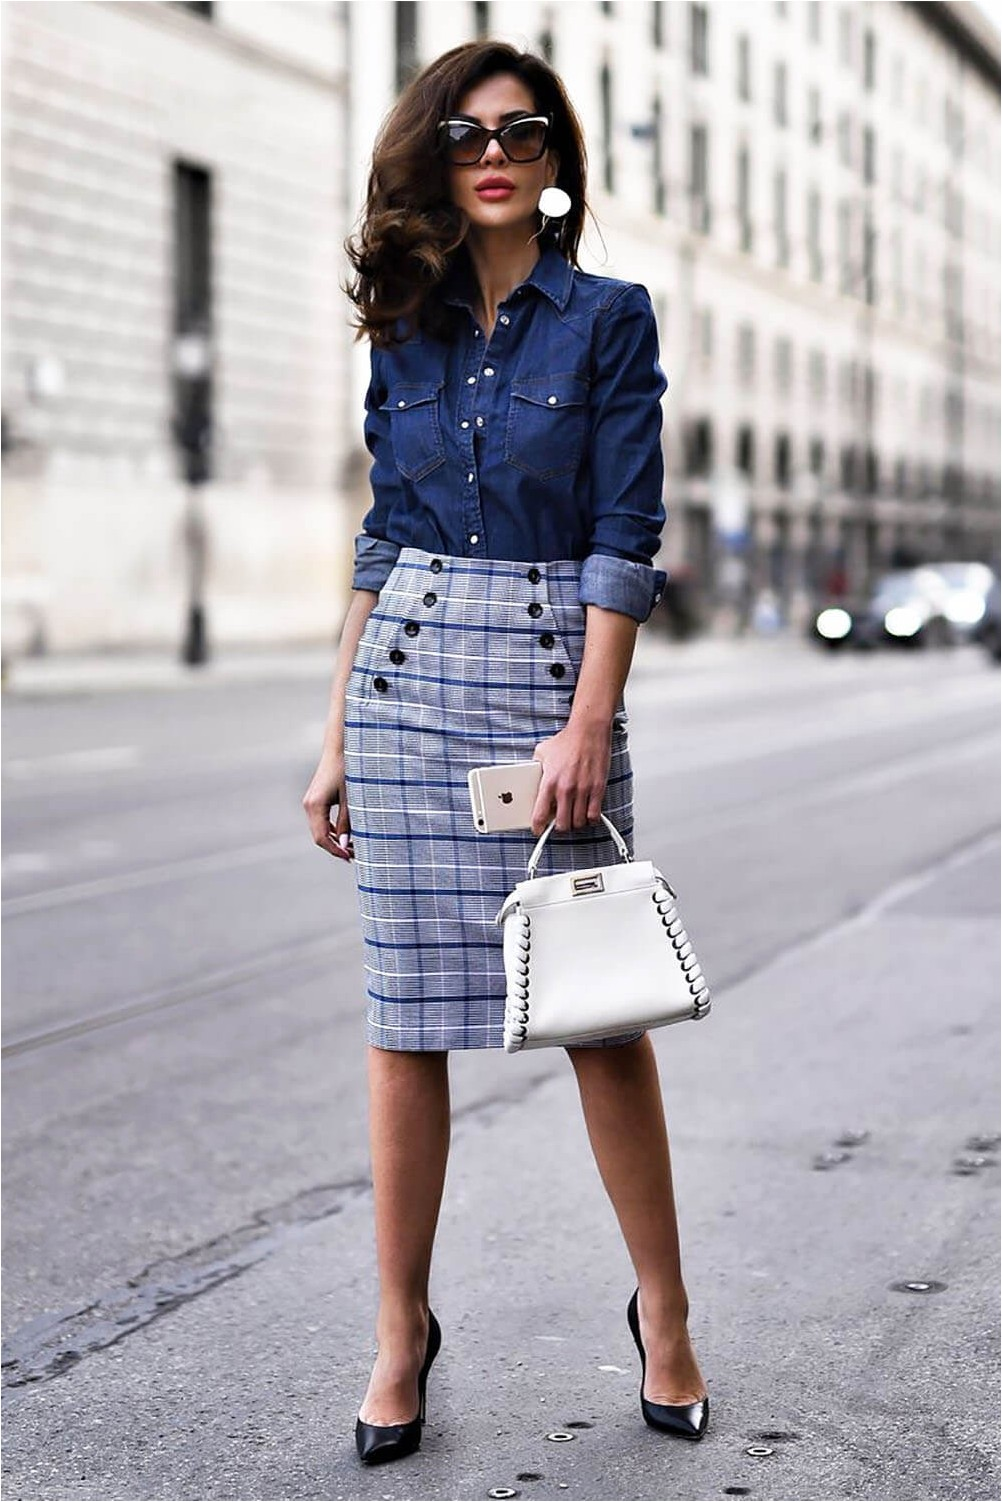 Casual style with pencil skirt.